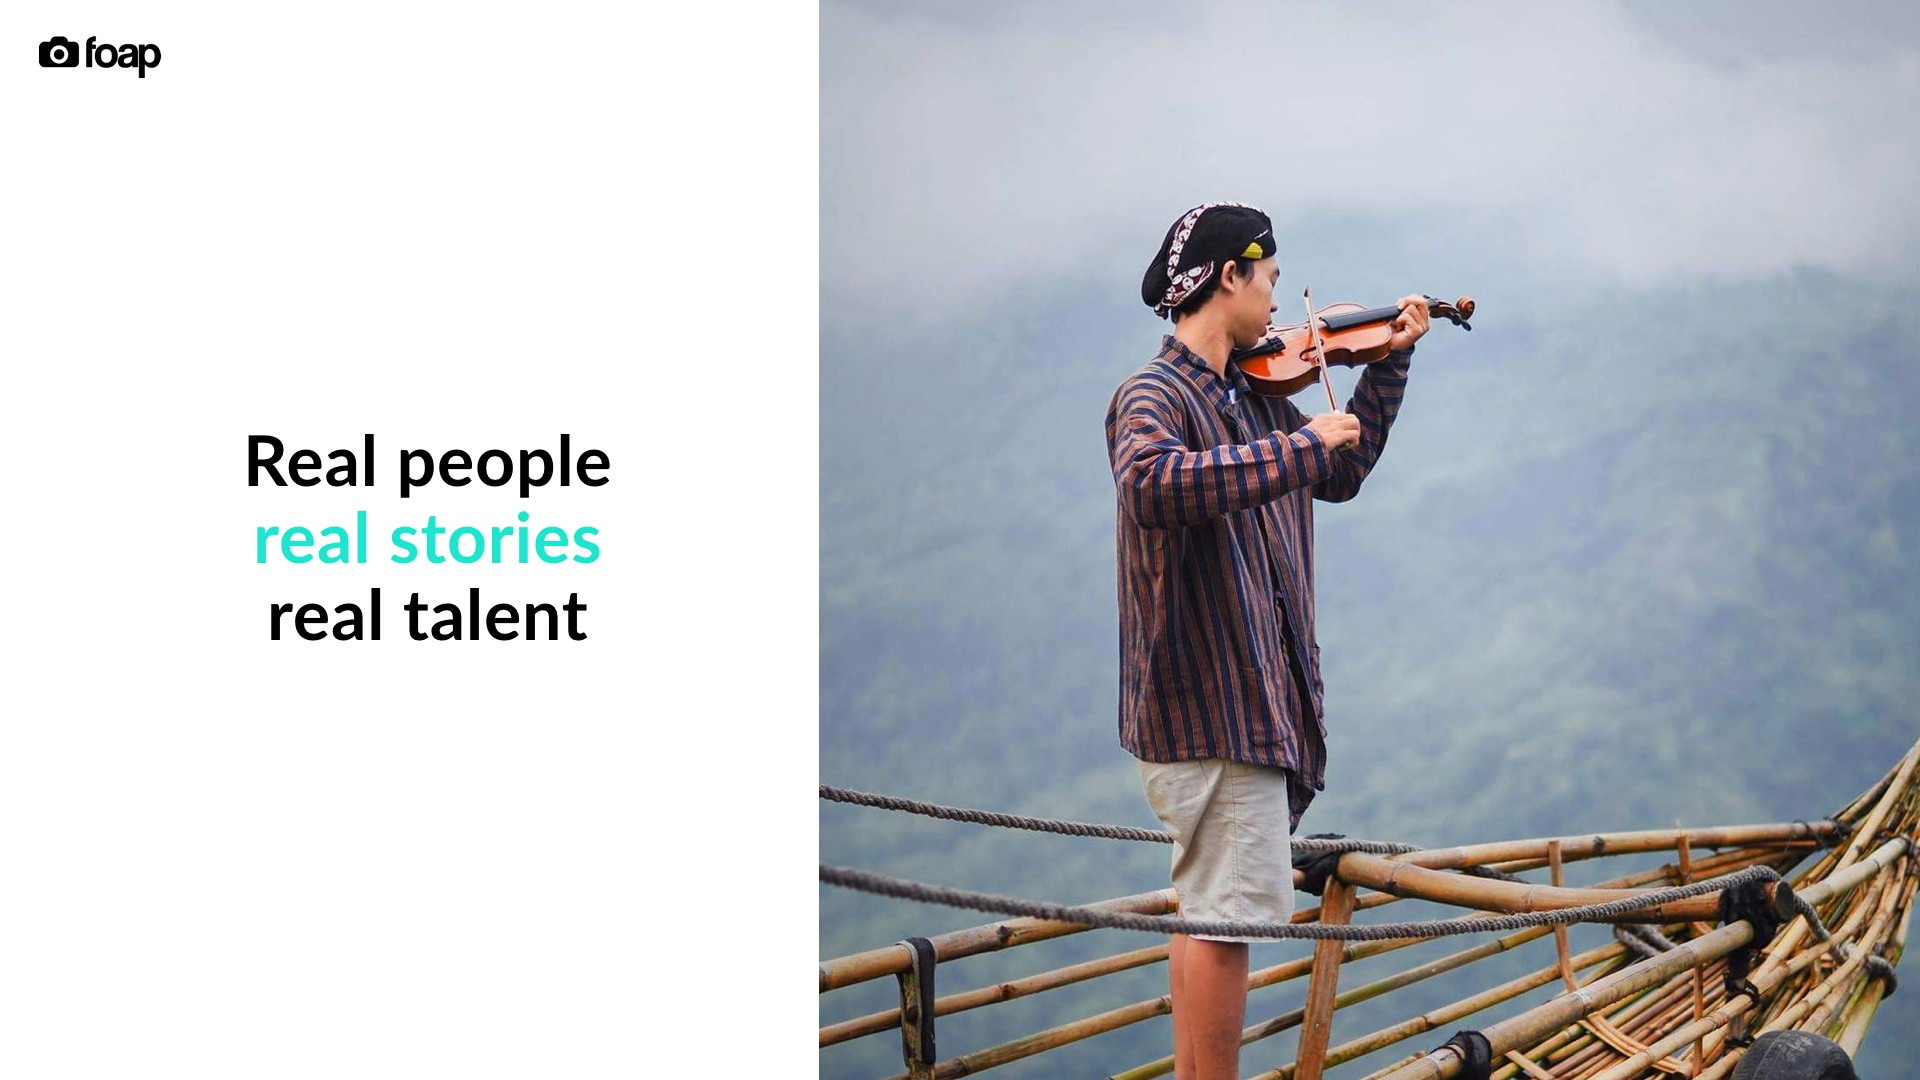 Real people, real stories, real talent